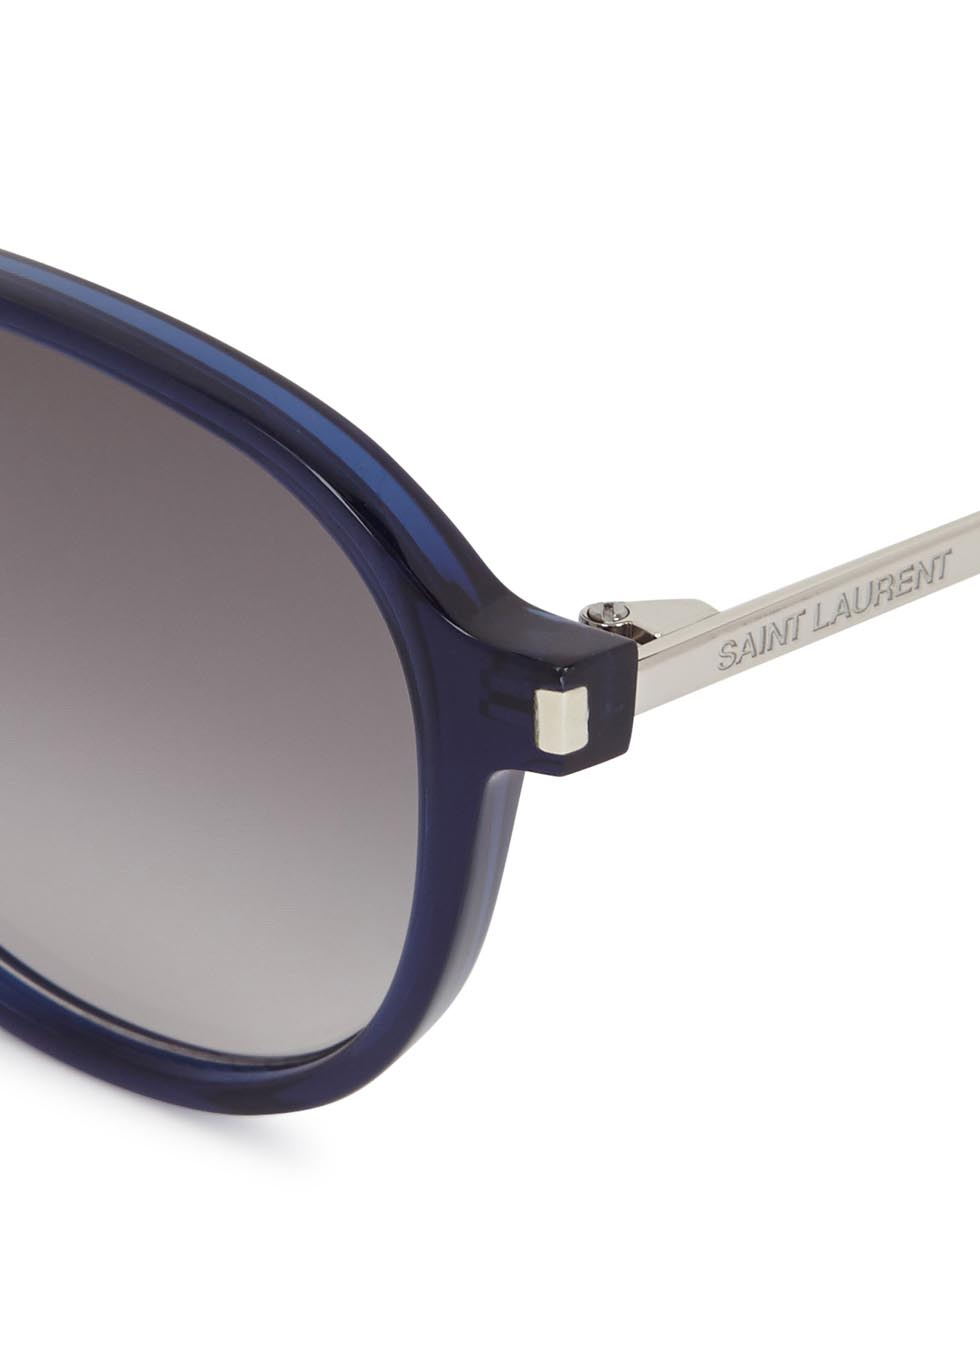 SL110 navy round-frame sunglasses - Yves Saint Laurent